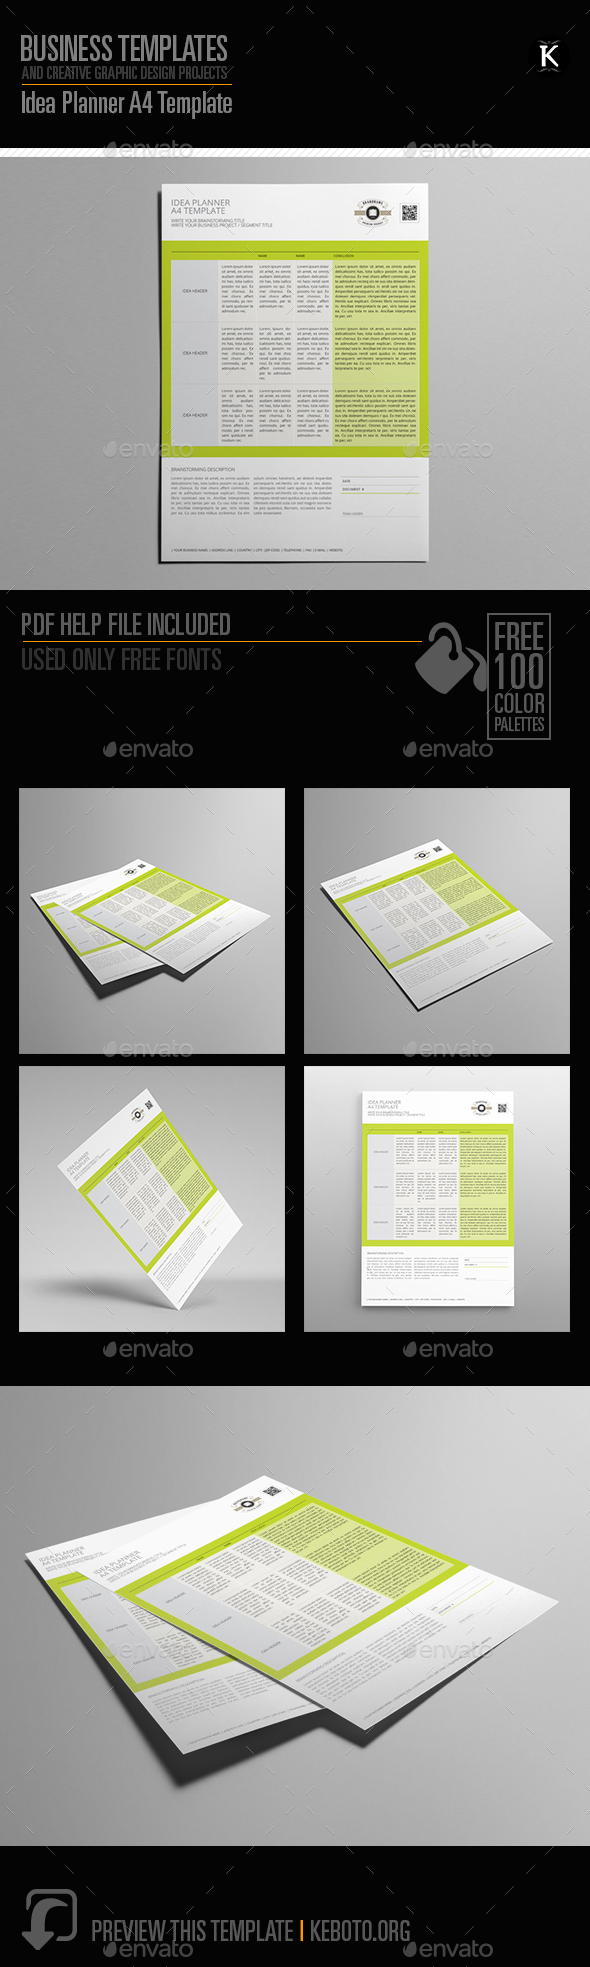 Idea Planner A4 Template - Miscellaneous Print Templates